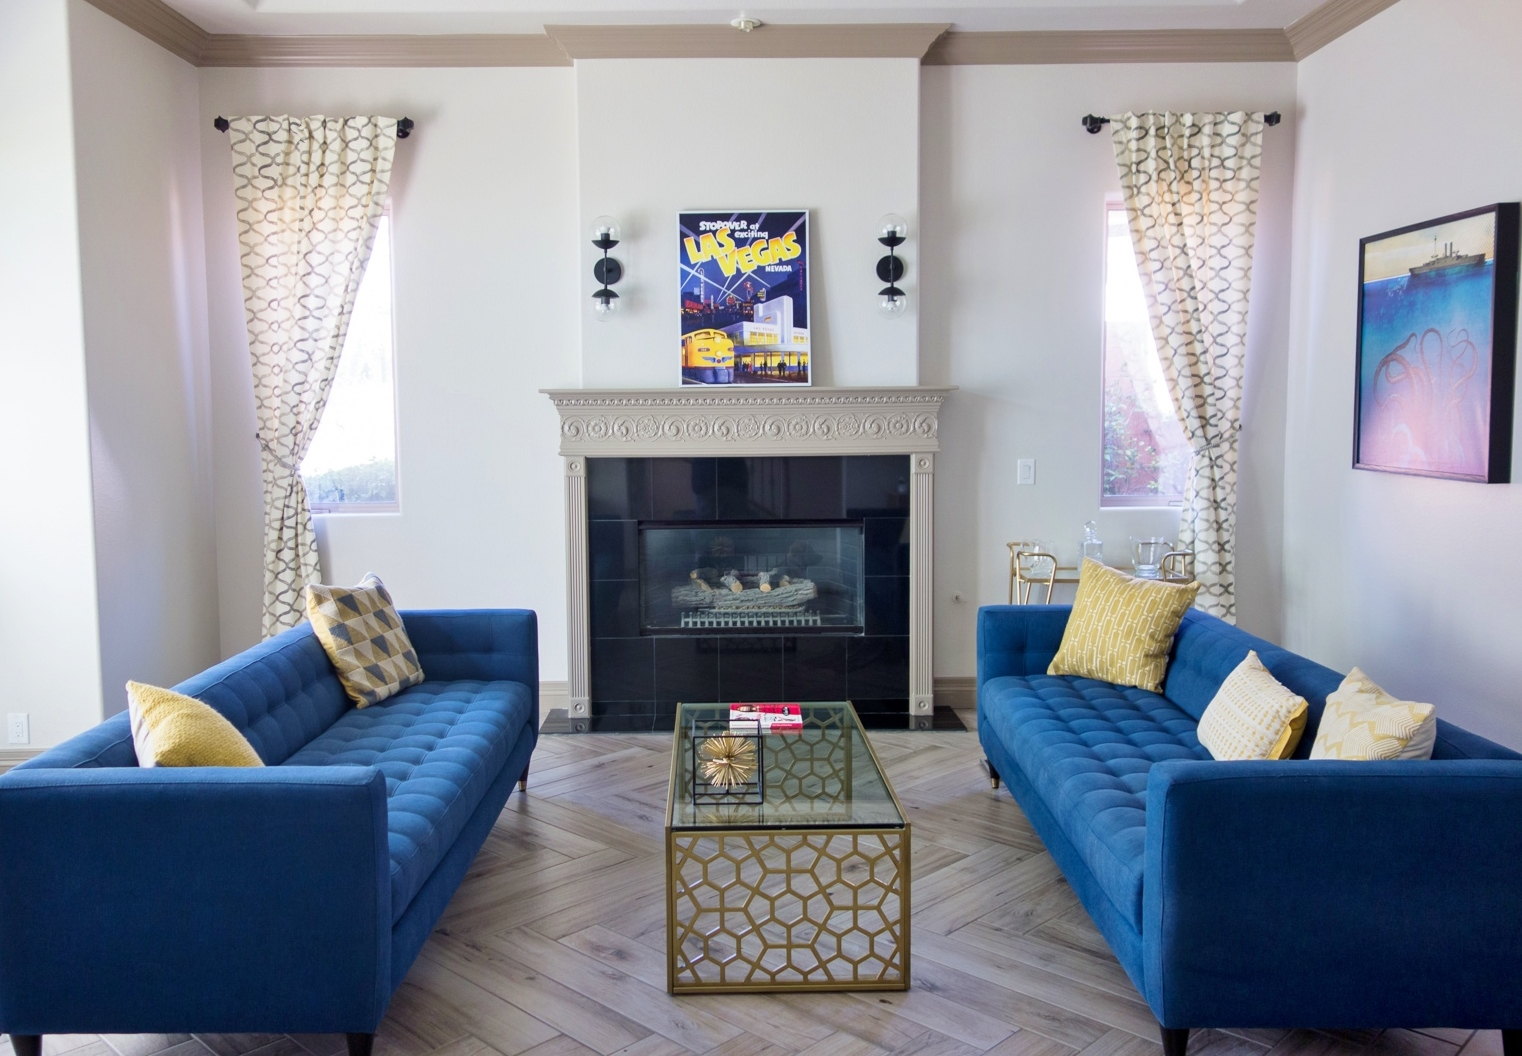 How to make this fireplace more modern? Check out my advice. #fireplace #modernlivingroom #livingroom #livingroomideas #tiledfireplace